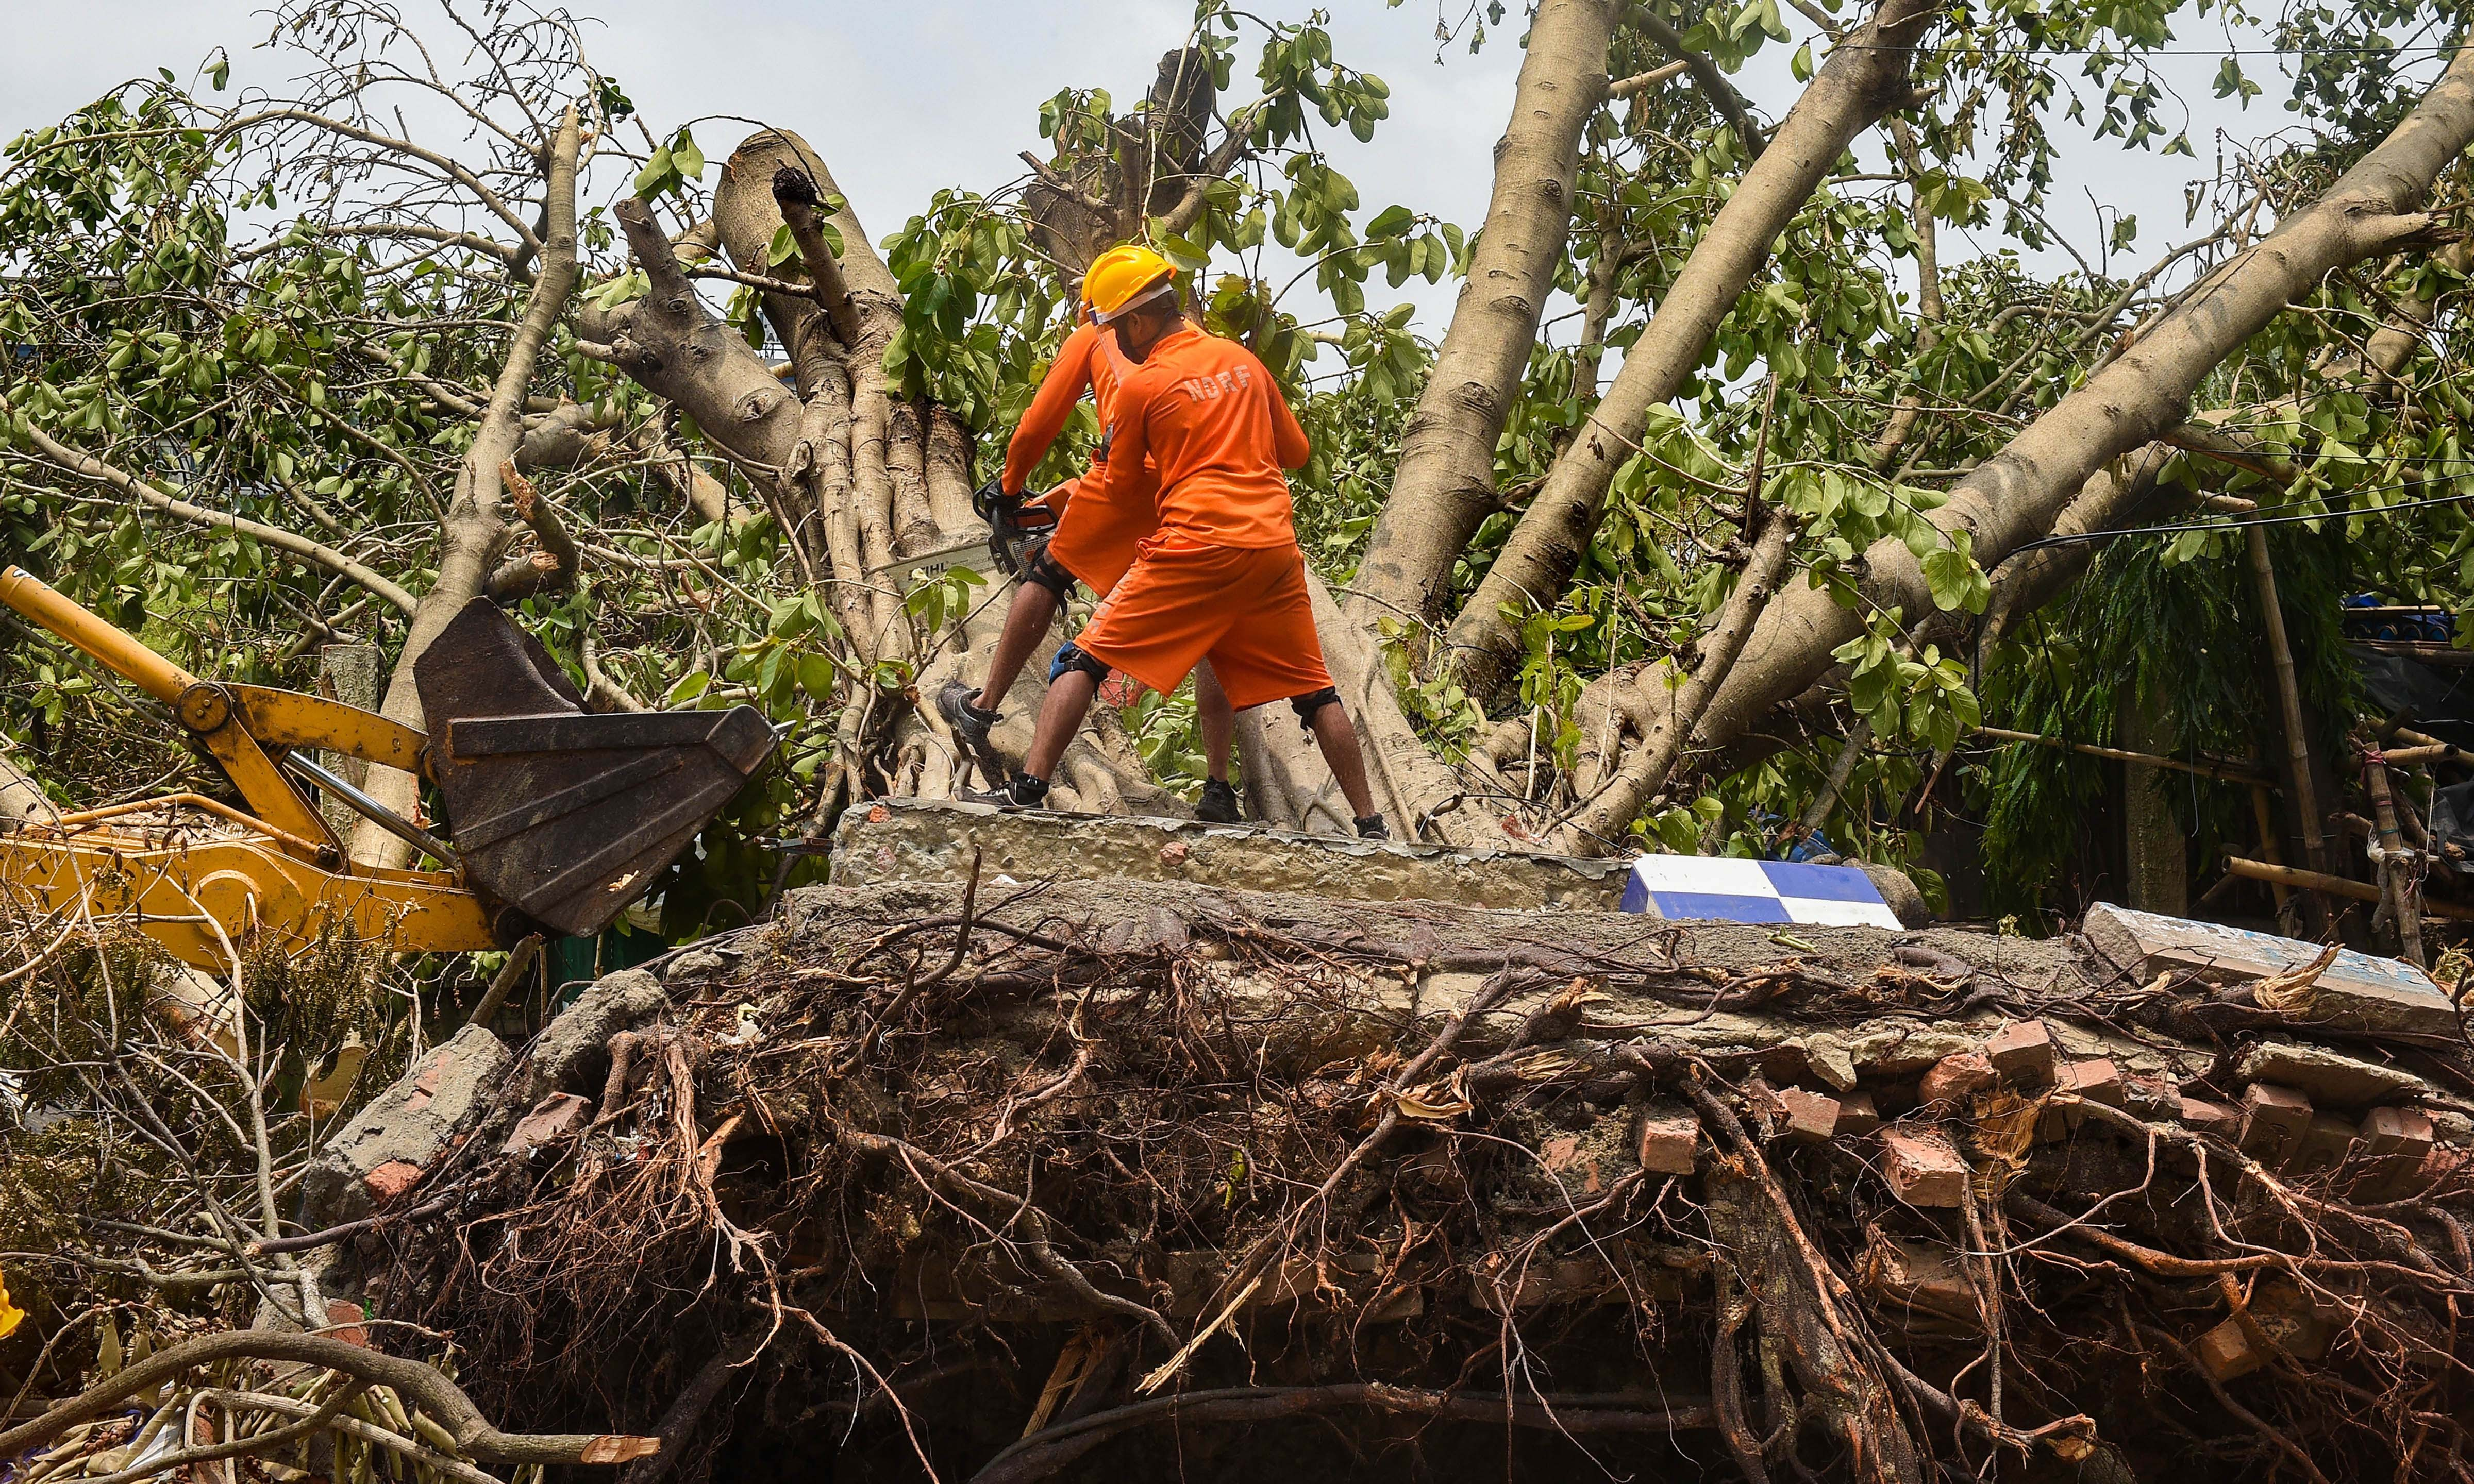 NDRF personnel work to clear an uprooted tree from a road, in the aftermath of Cyclone Amphan, in Calcutta, Wednesday, May 27, 2020